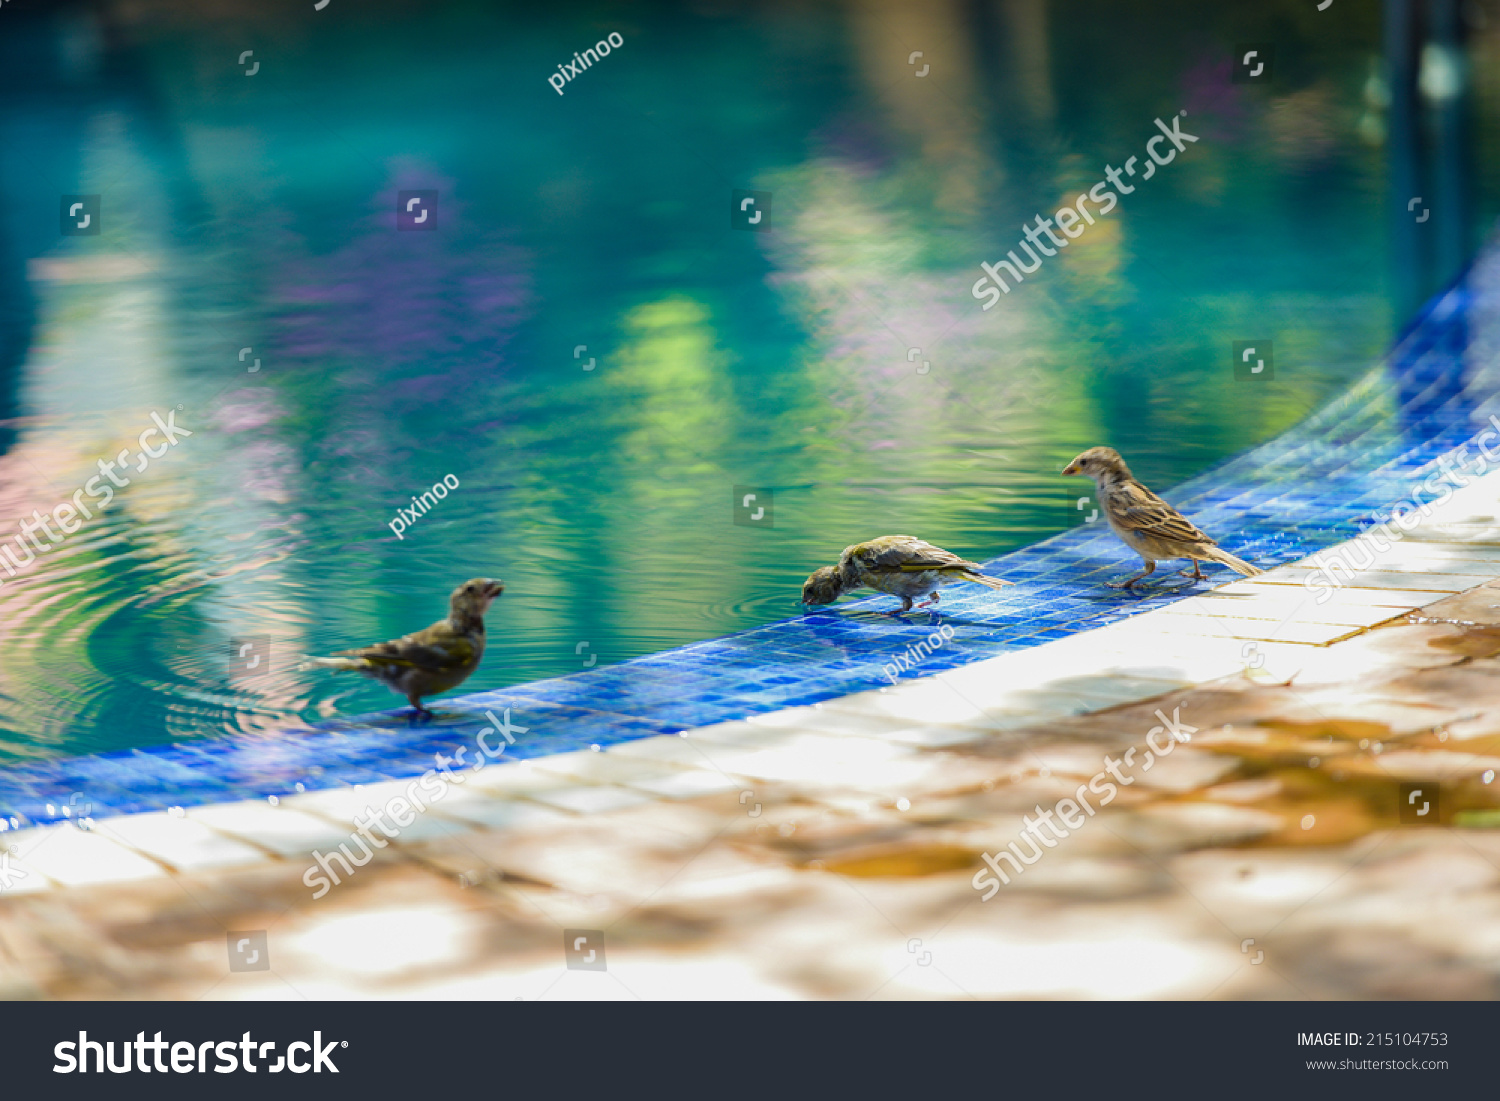 Three little sparrows near swimming pool stock photo 215104753 shutterstock How to make swimming pool water drinkable